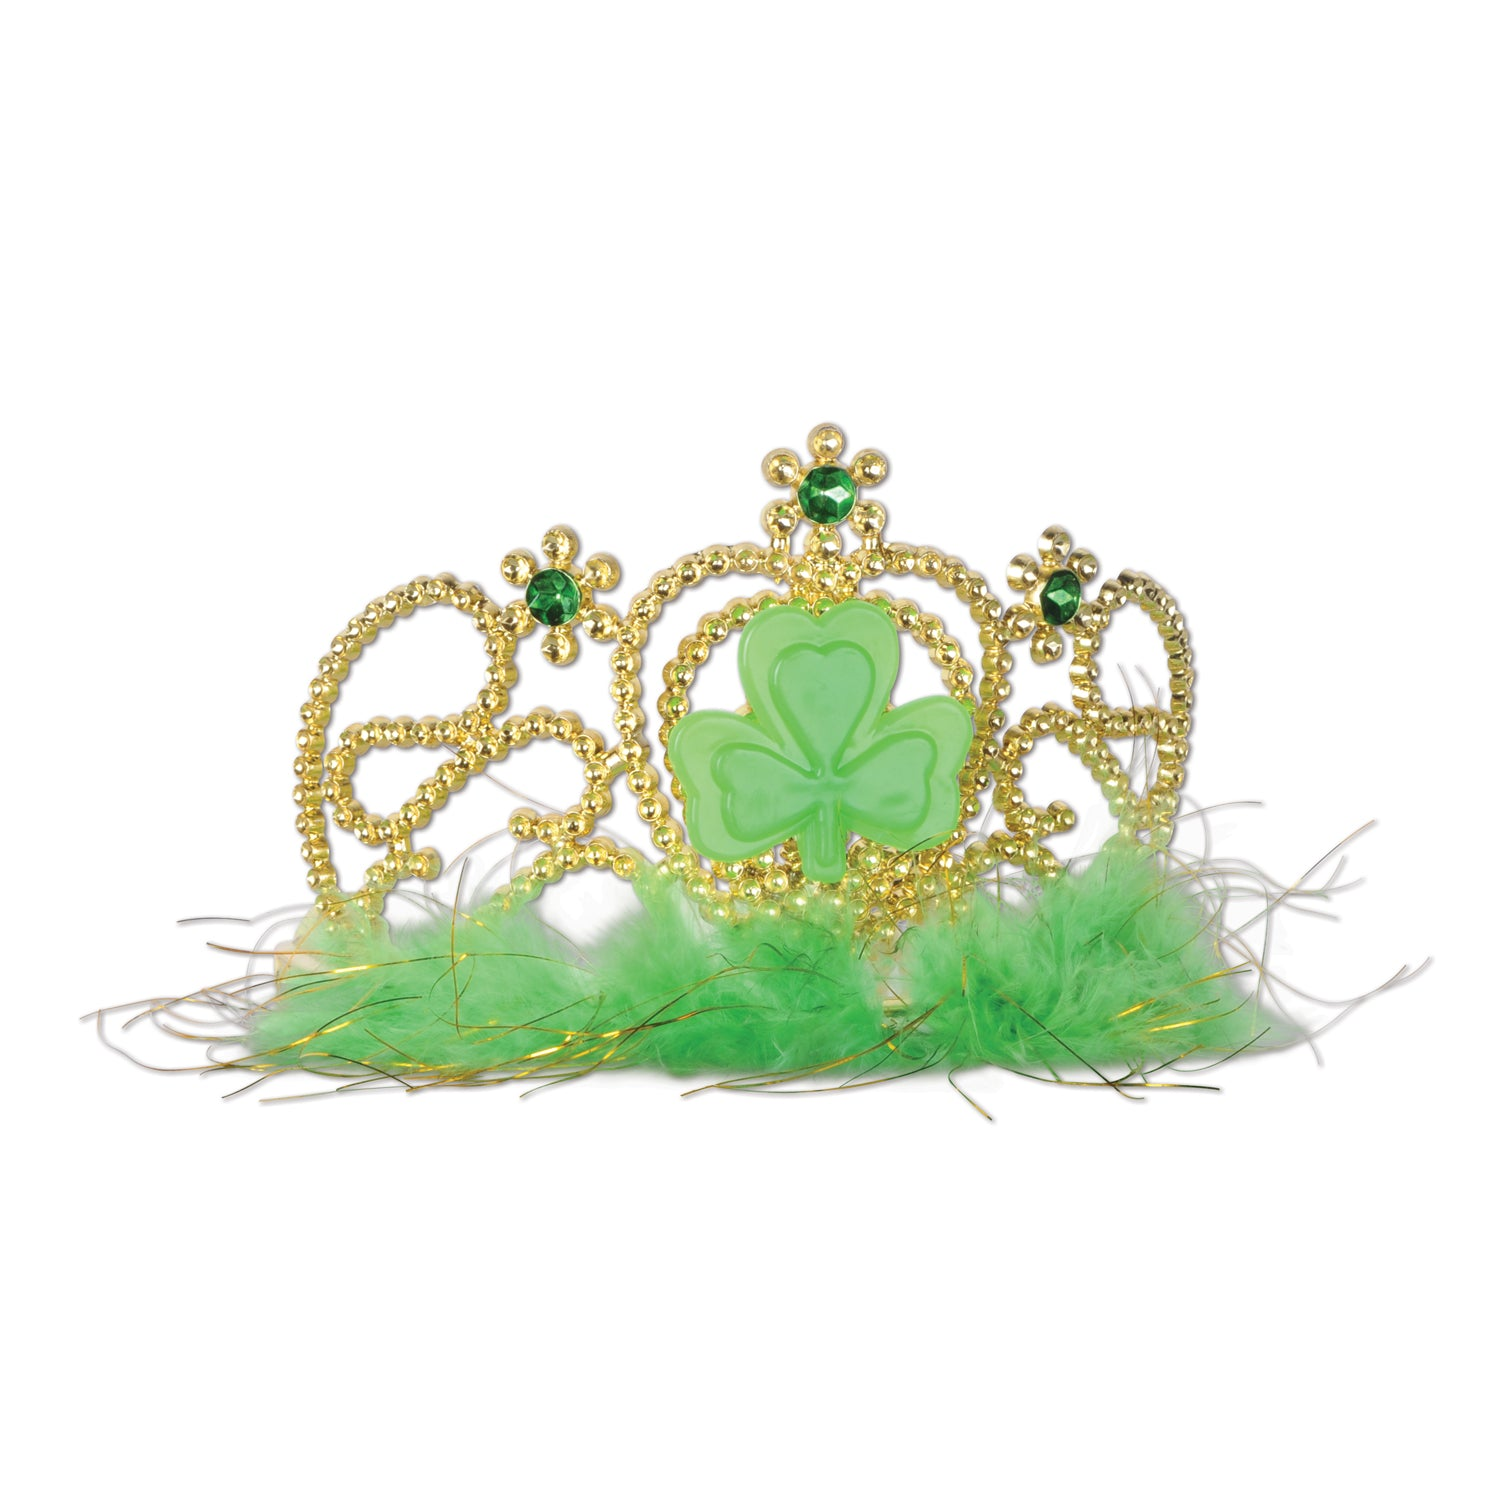 Plastic Shamrock Tiara by Beistle - St. Patricks Day Theme Decorations